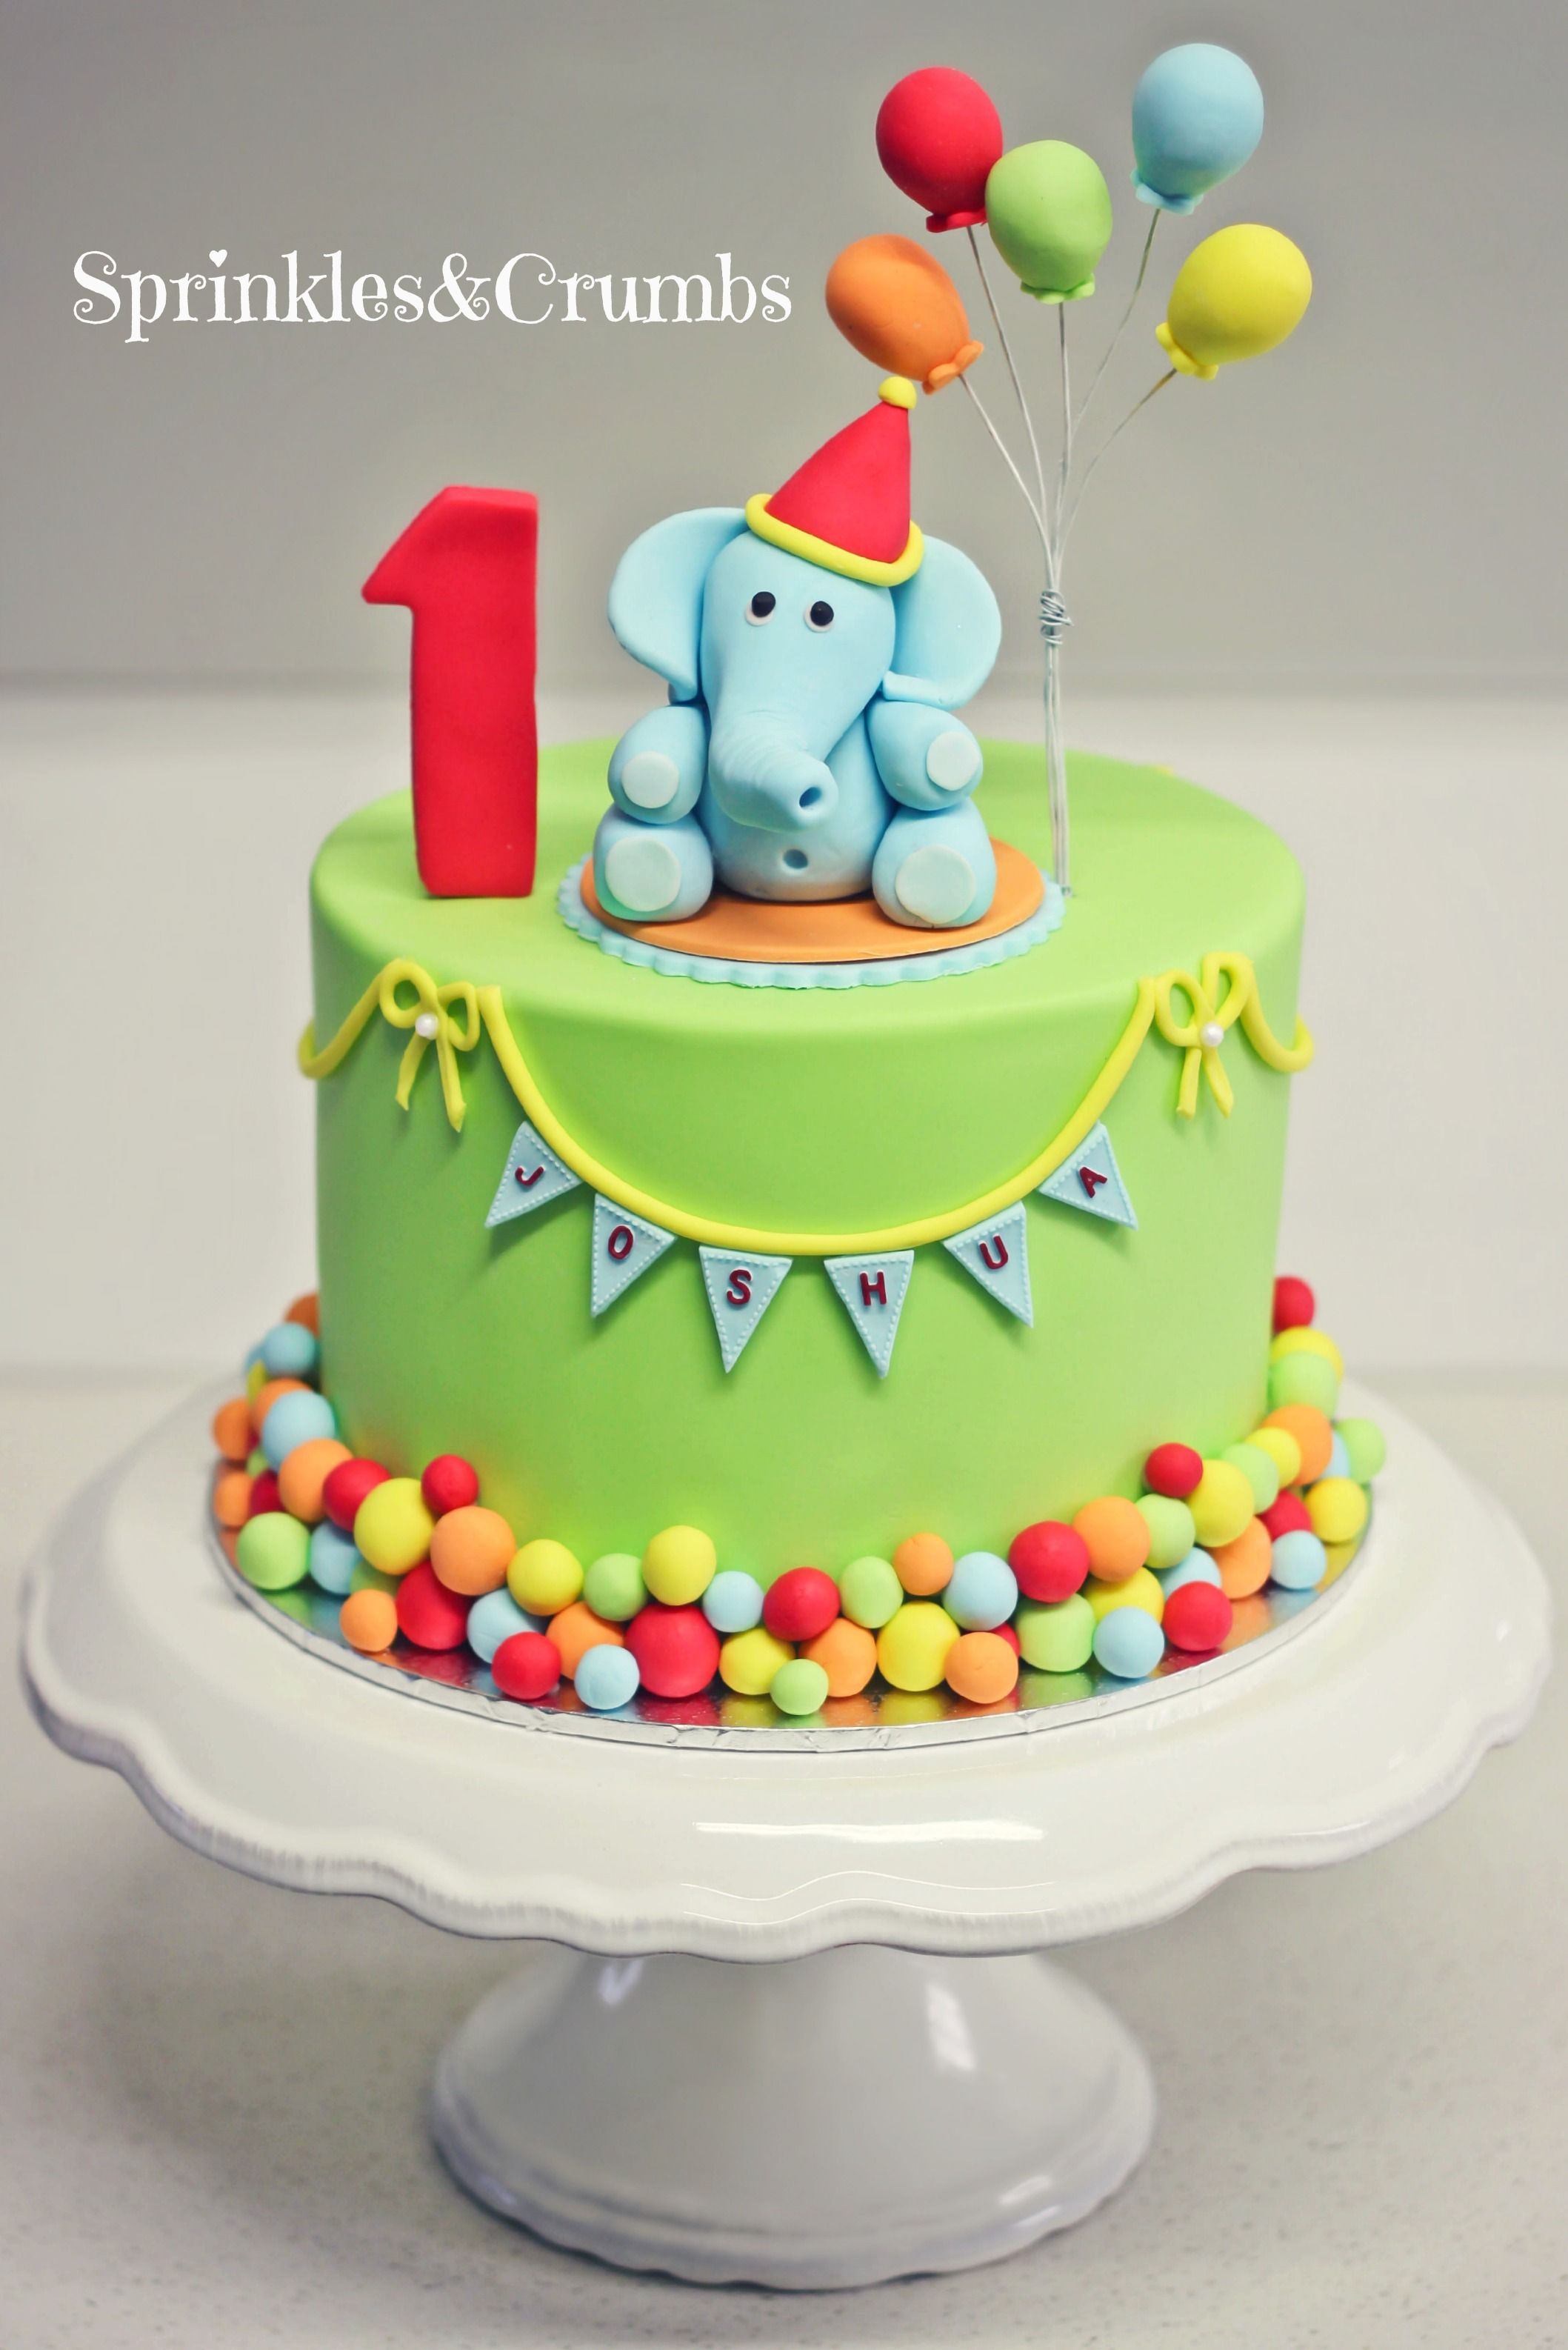 Birthday Cake Boy A Colourful Circus Themed First Birthday Cake Featuring An Elephant